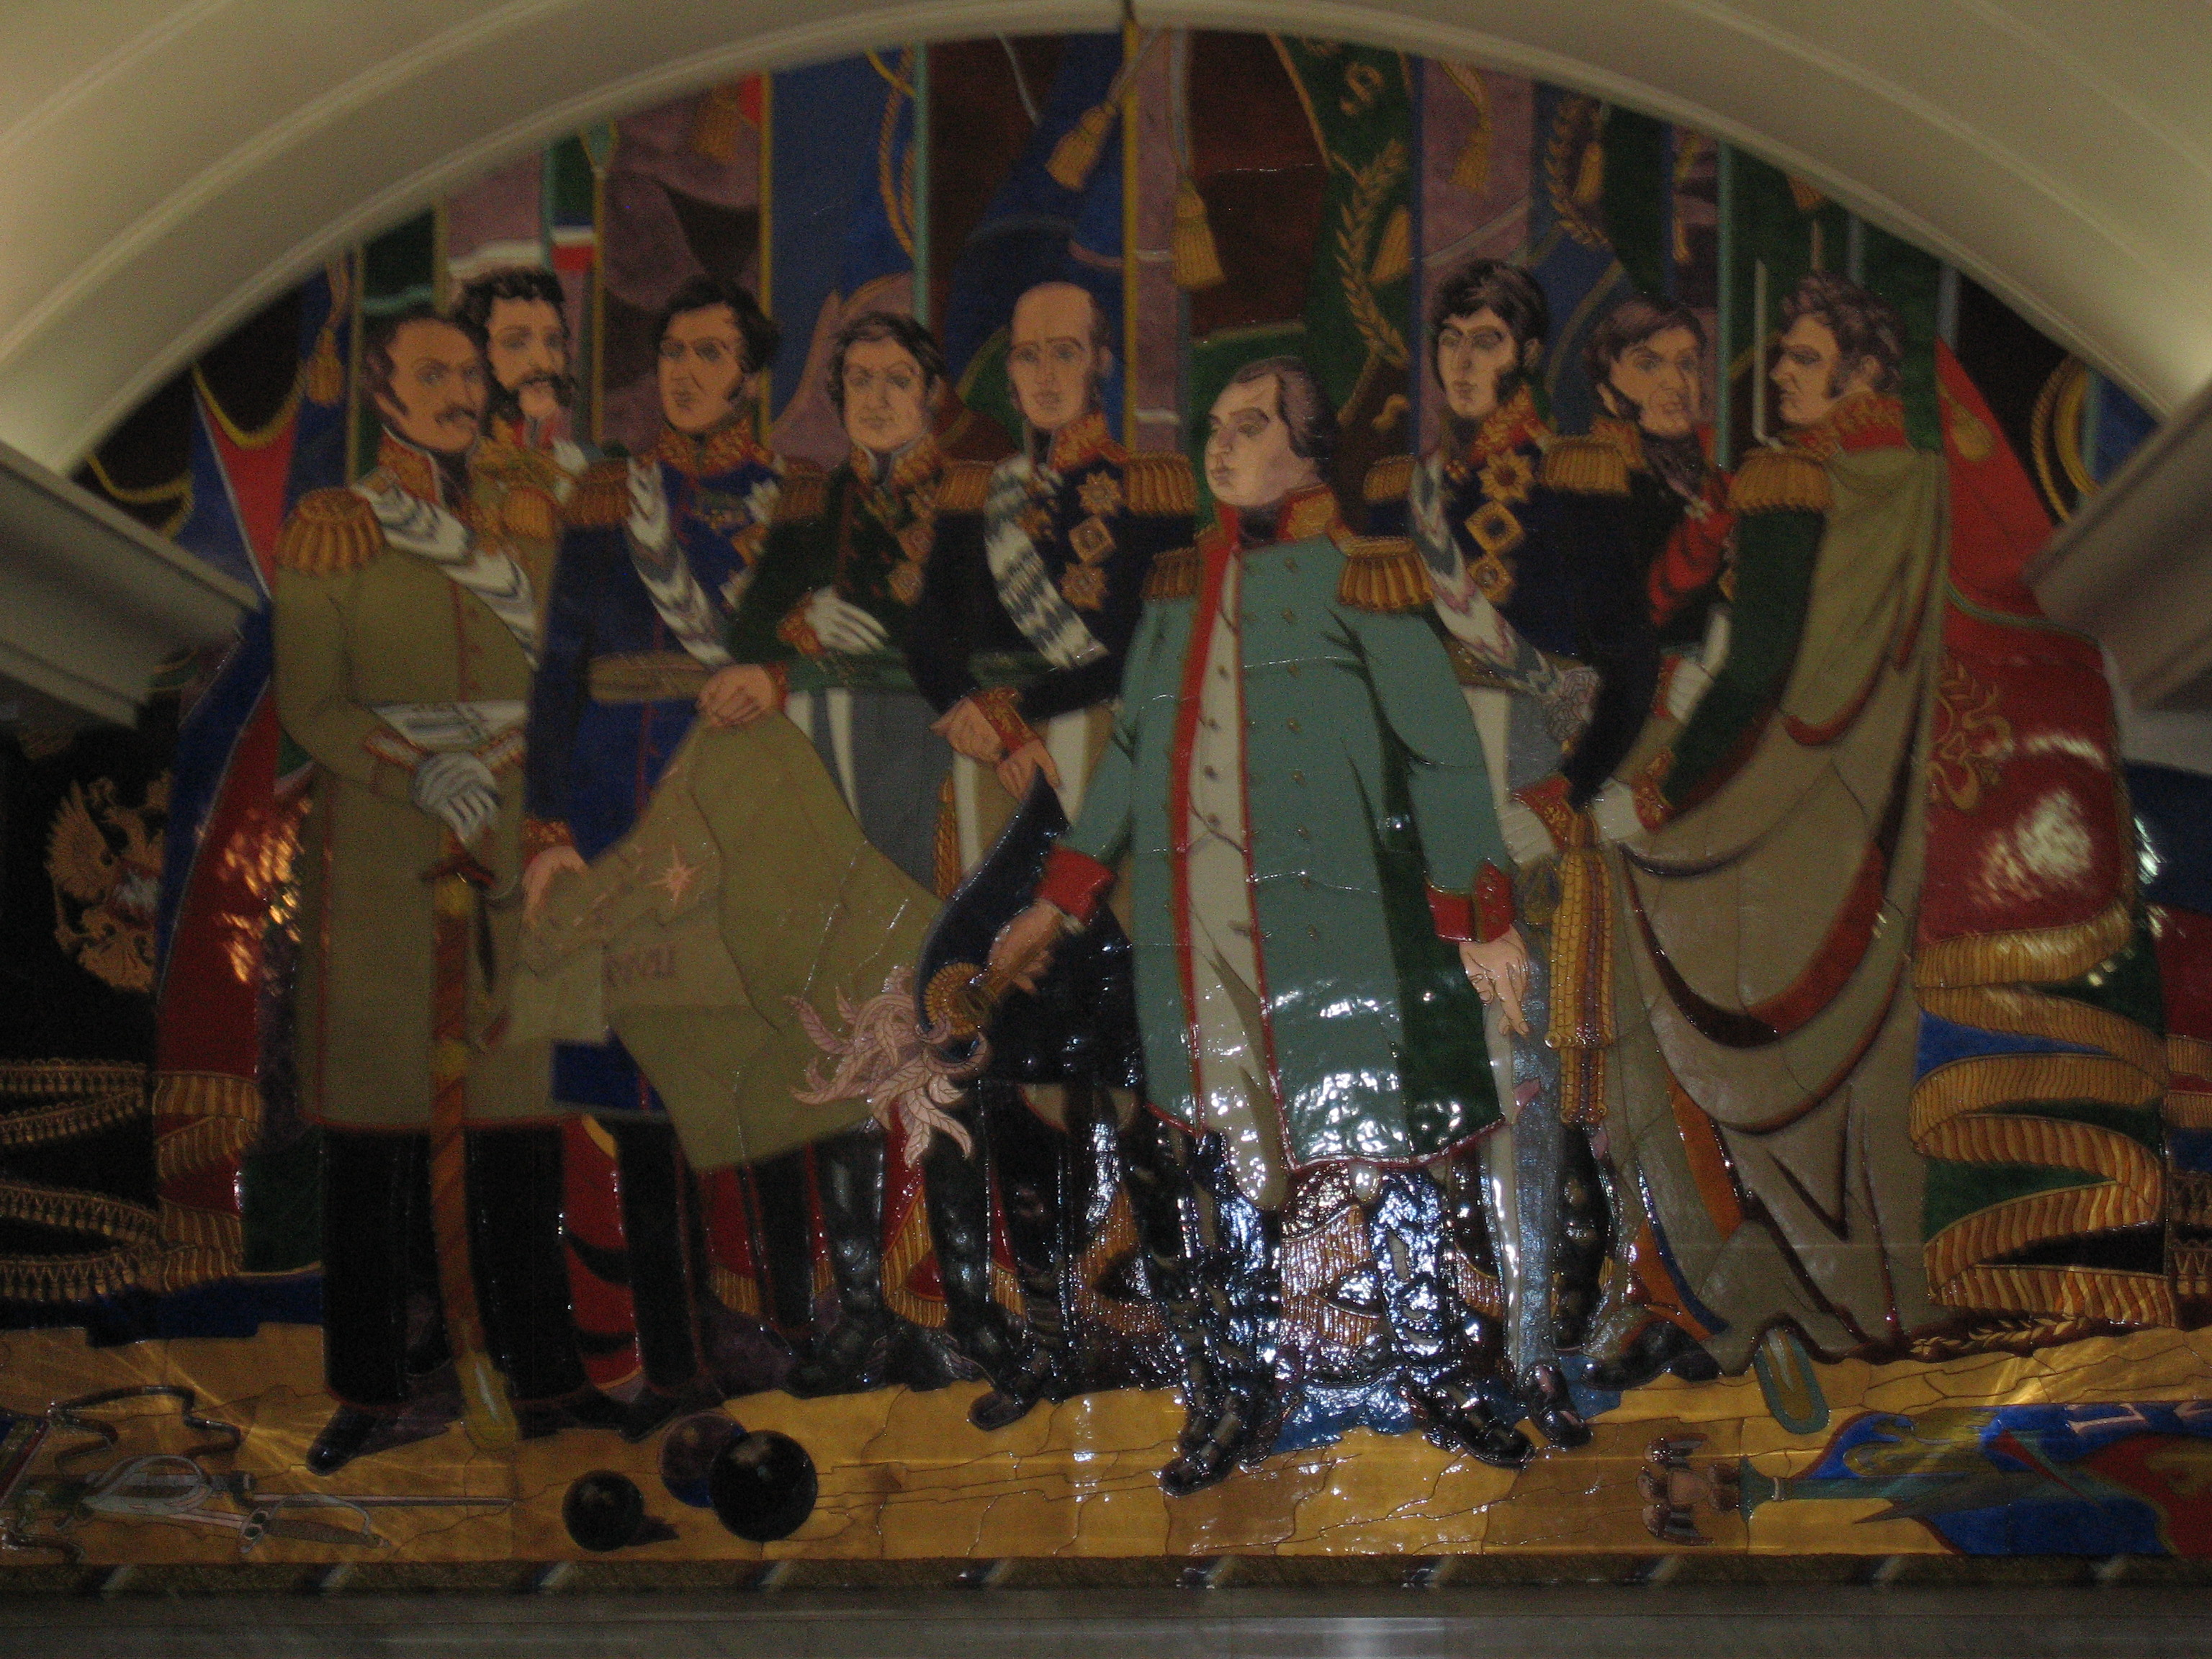 Victory Park, a new station that opened in 2003, celebrates victory over Russia's two invaders: Napoleon in 1812 (shown here) on one side and the Nazis in 1945 on the other side.